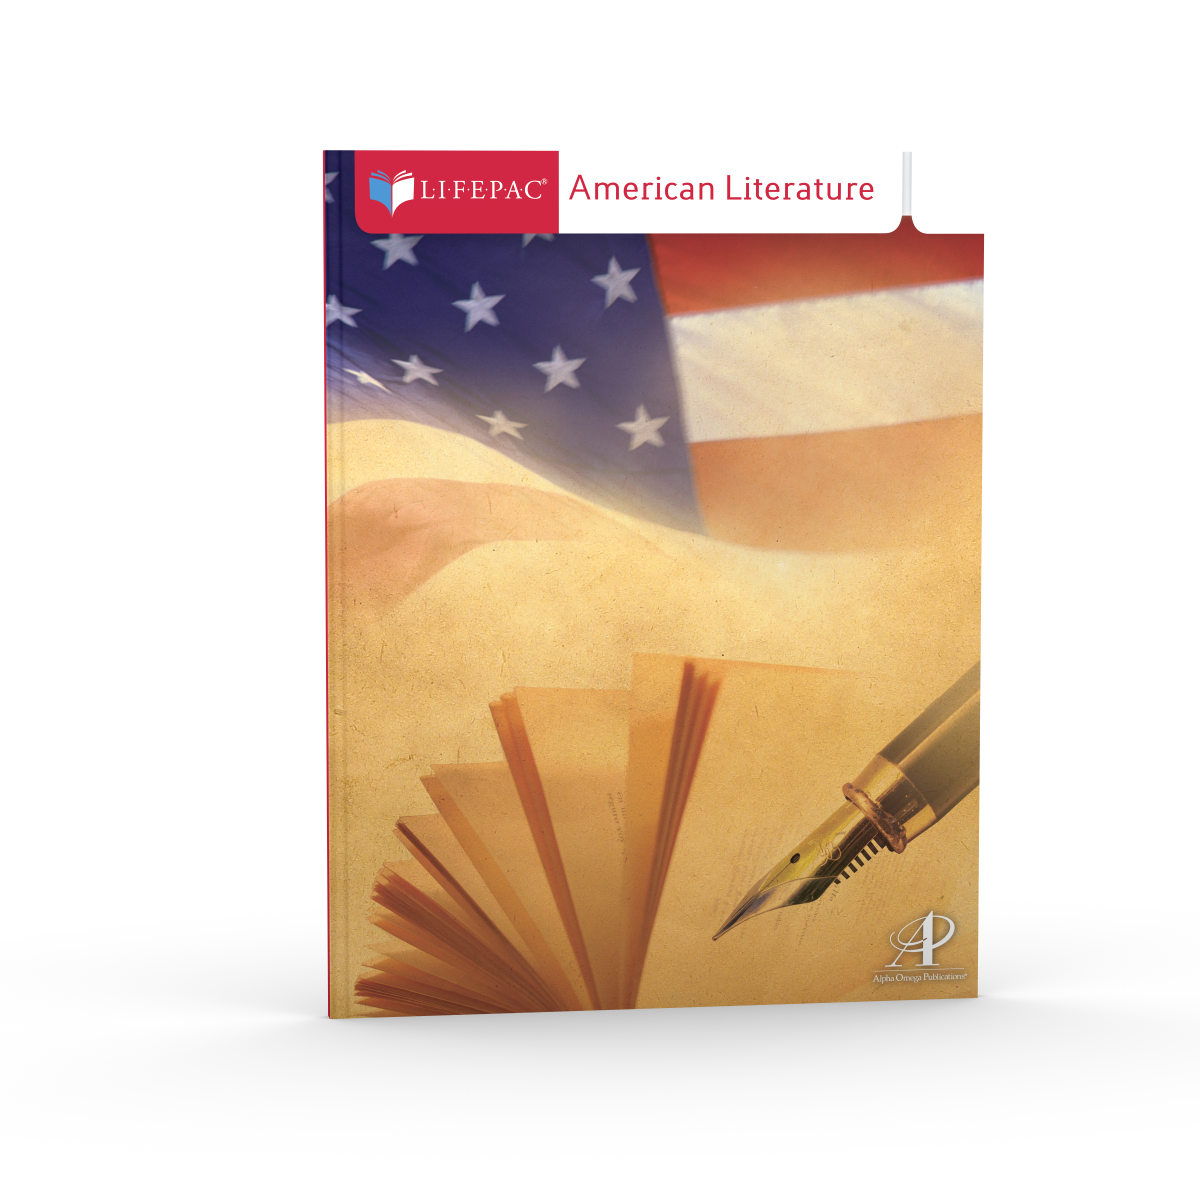 LIFEPAC® American Literature Teacher's Guide